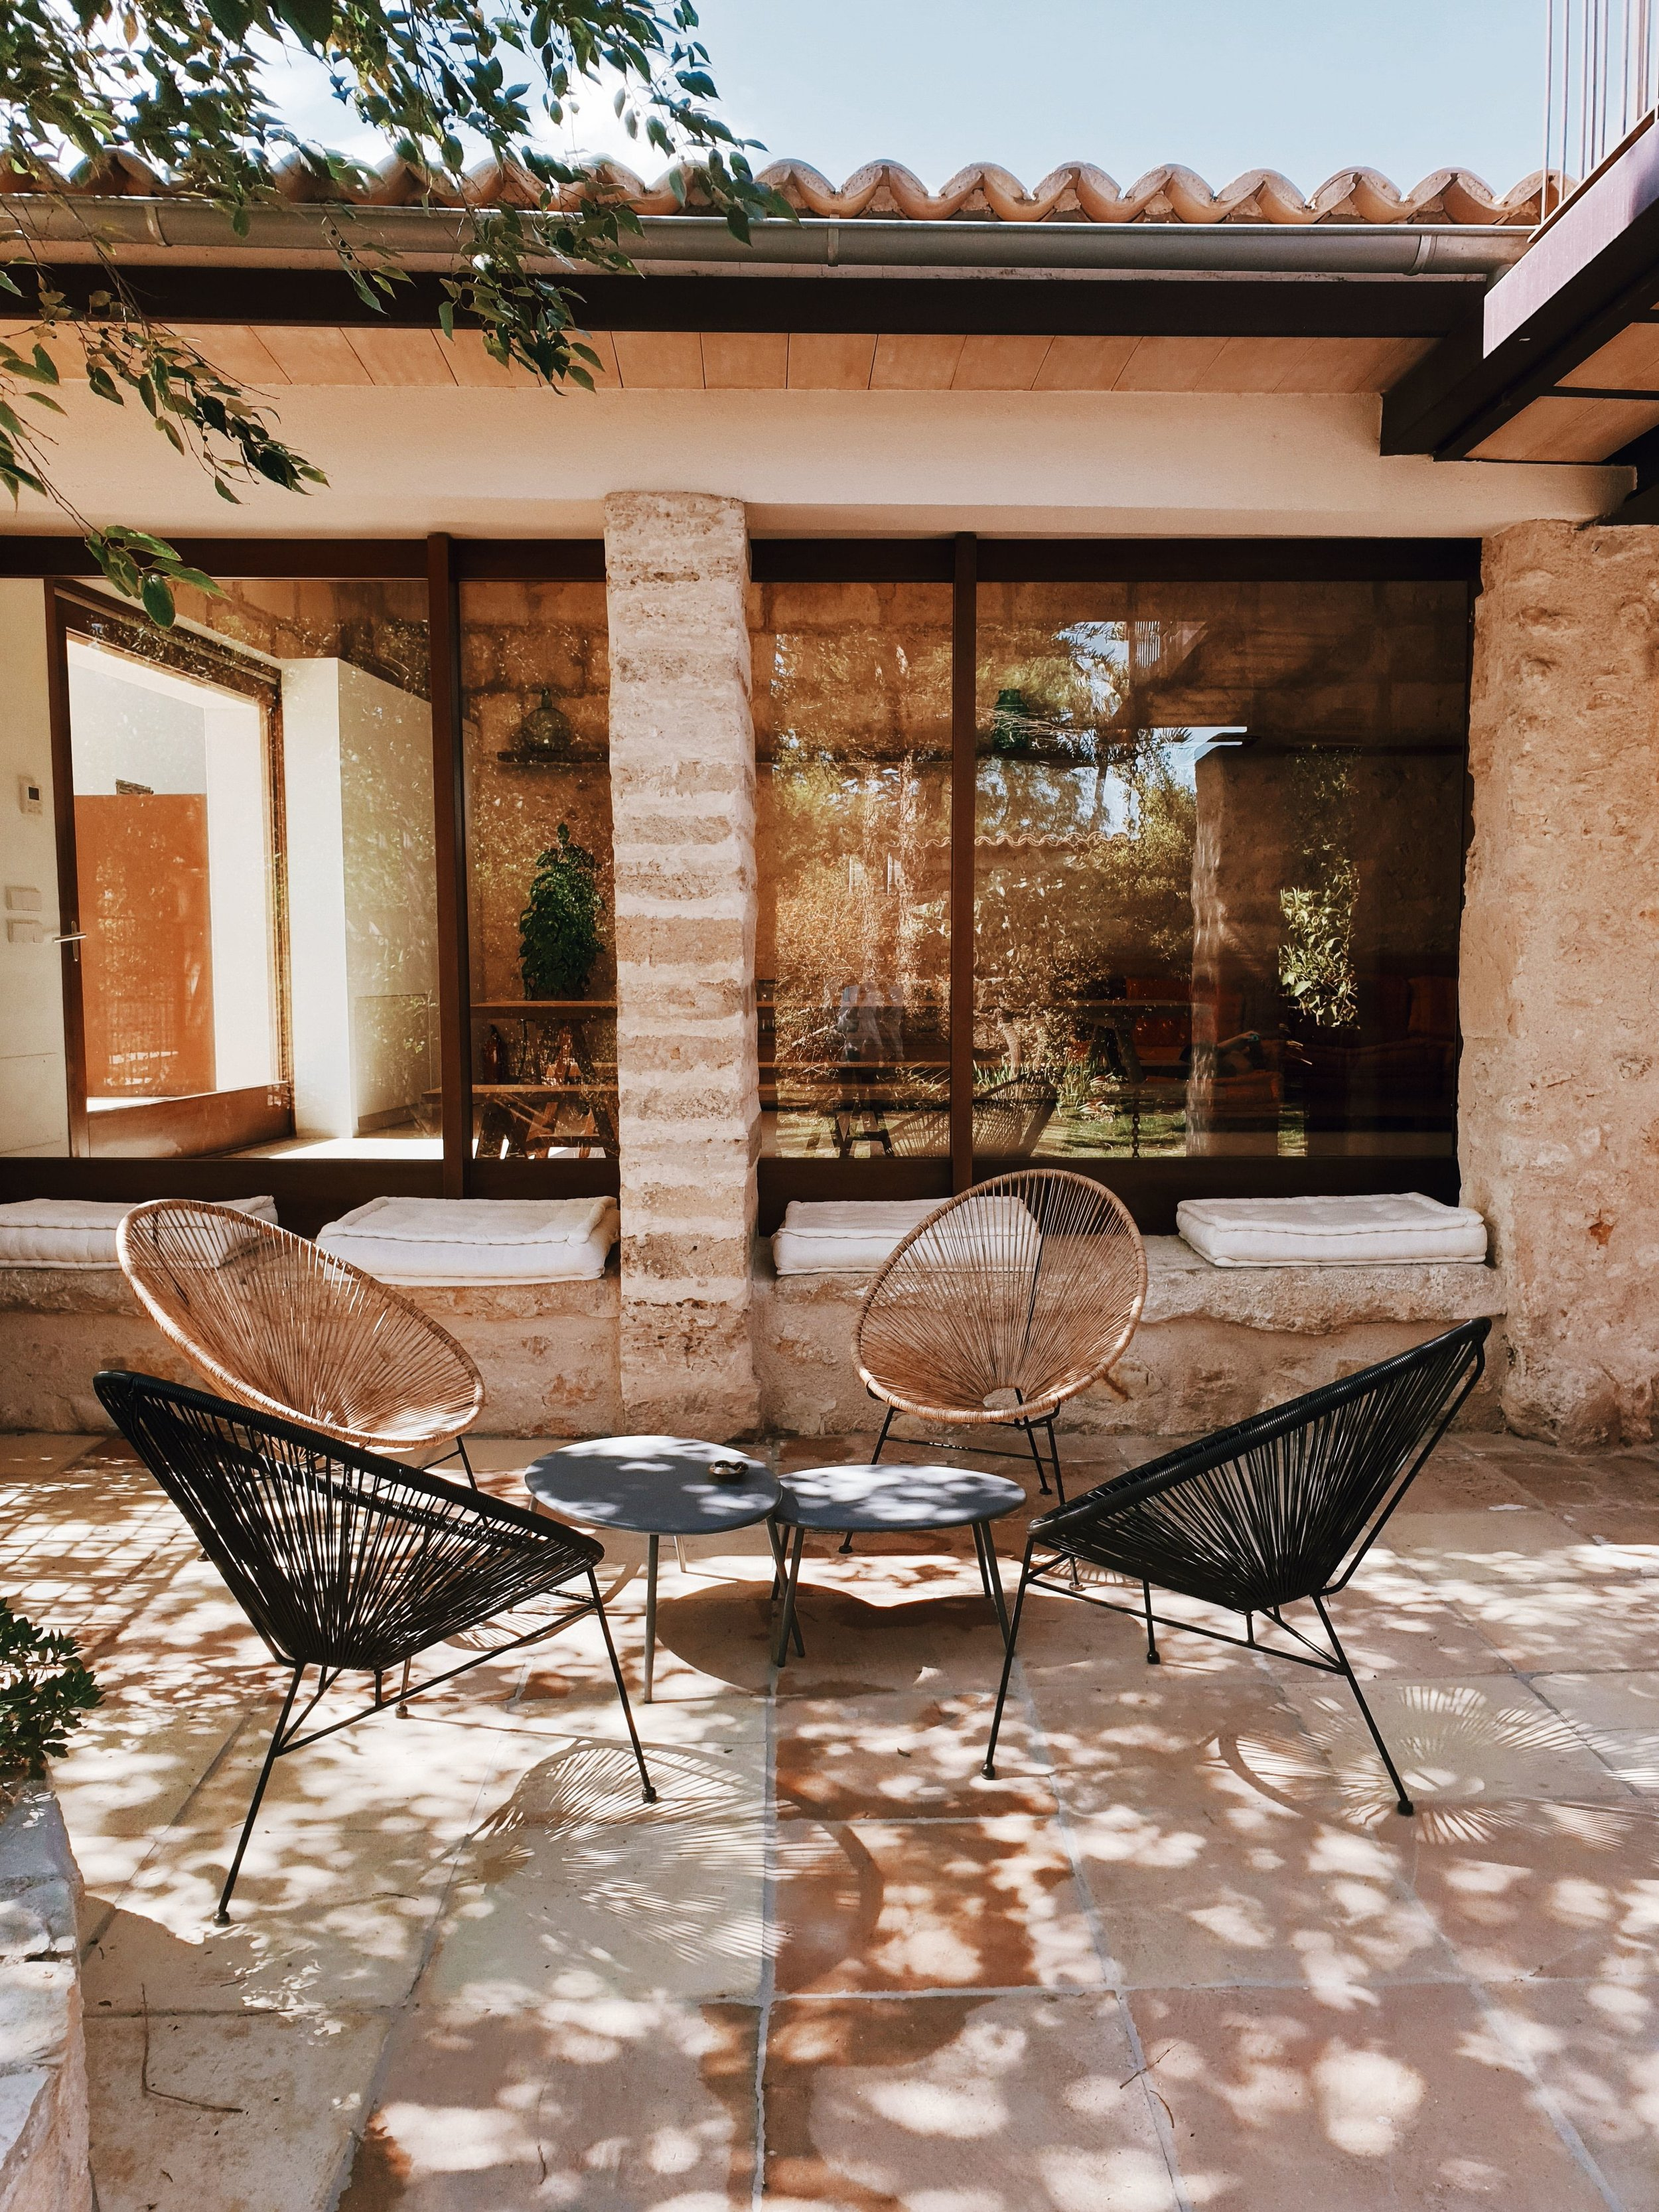 One of the the gorgeous outdoor seating areas at the Villa